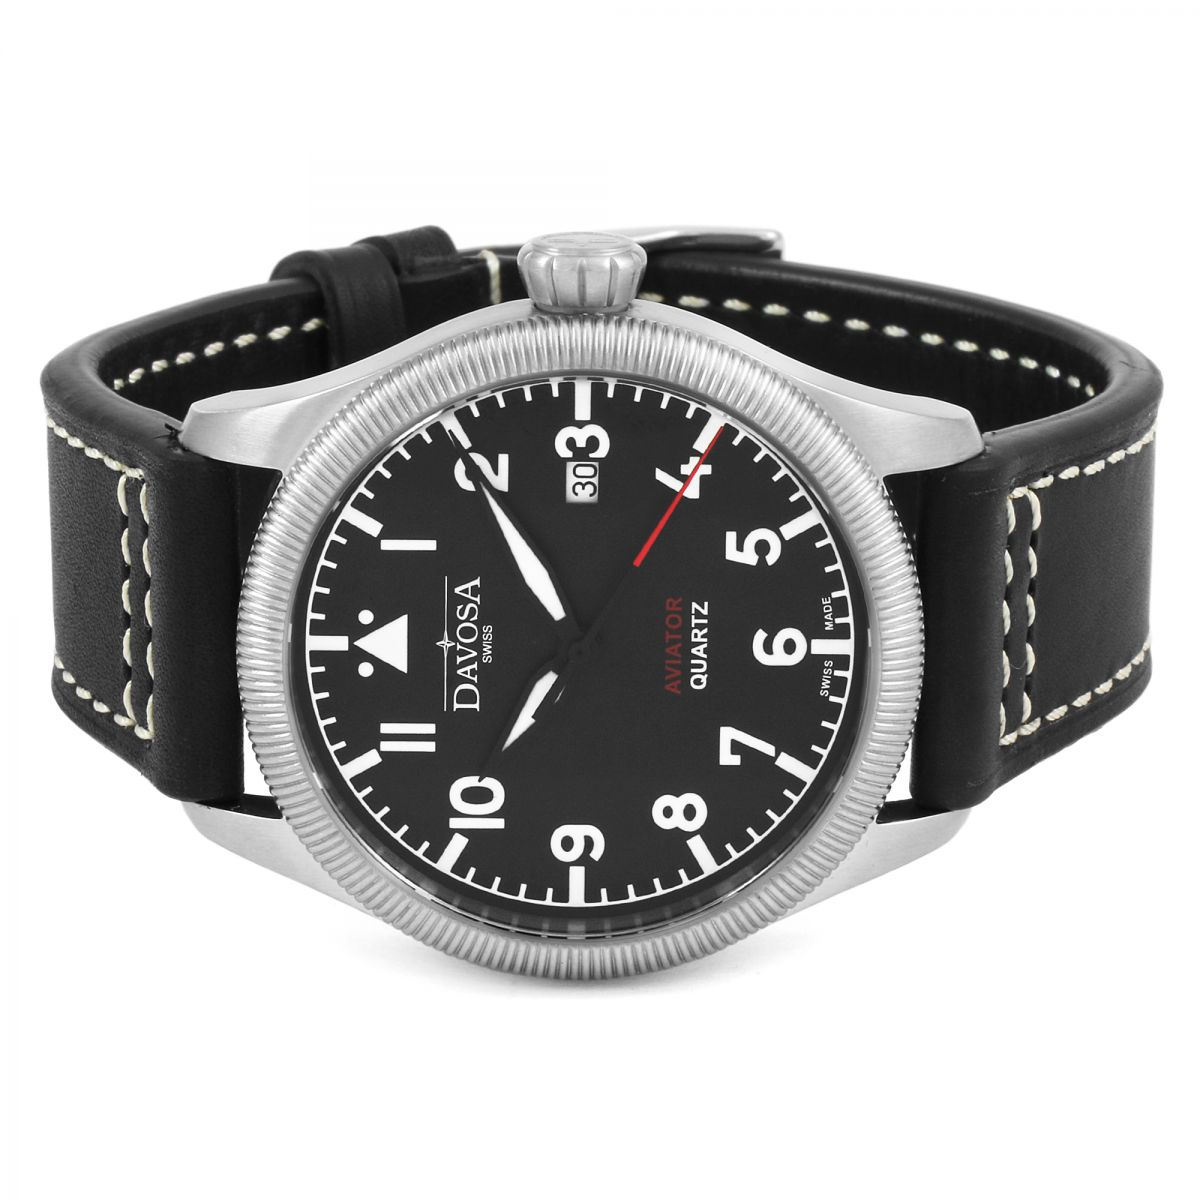 aviator watchpro highly watch watchpros to bristol scout s commended watches